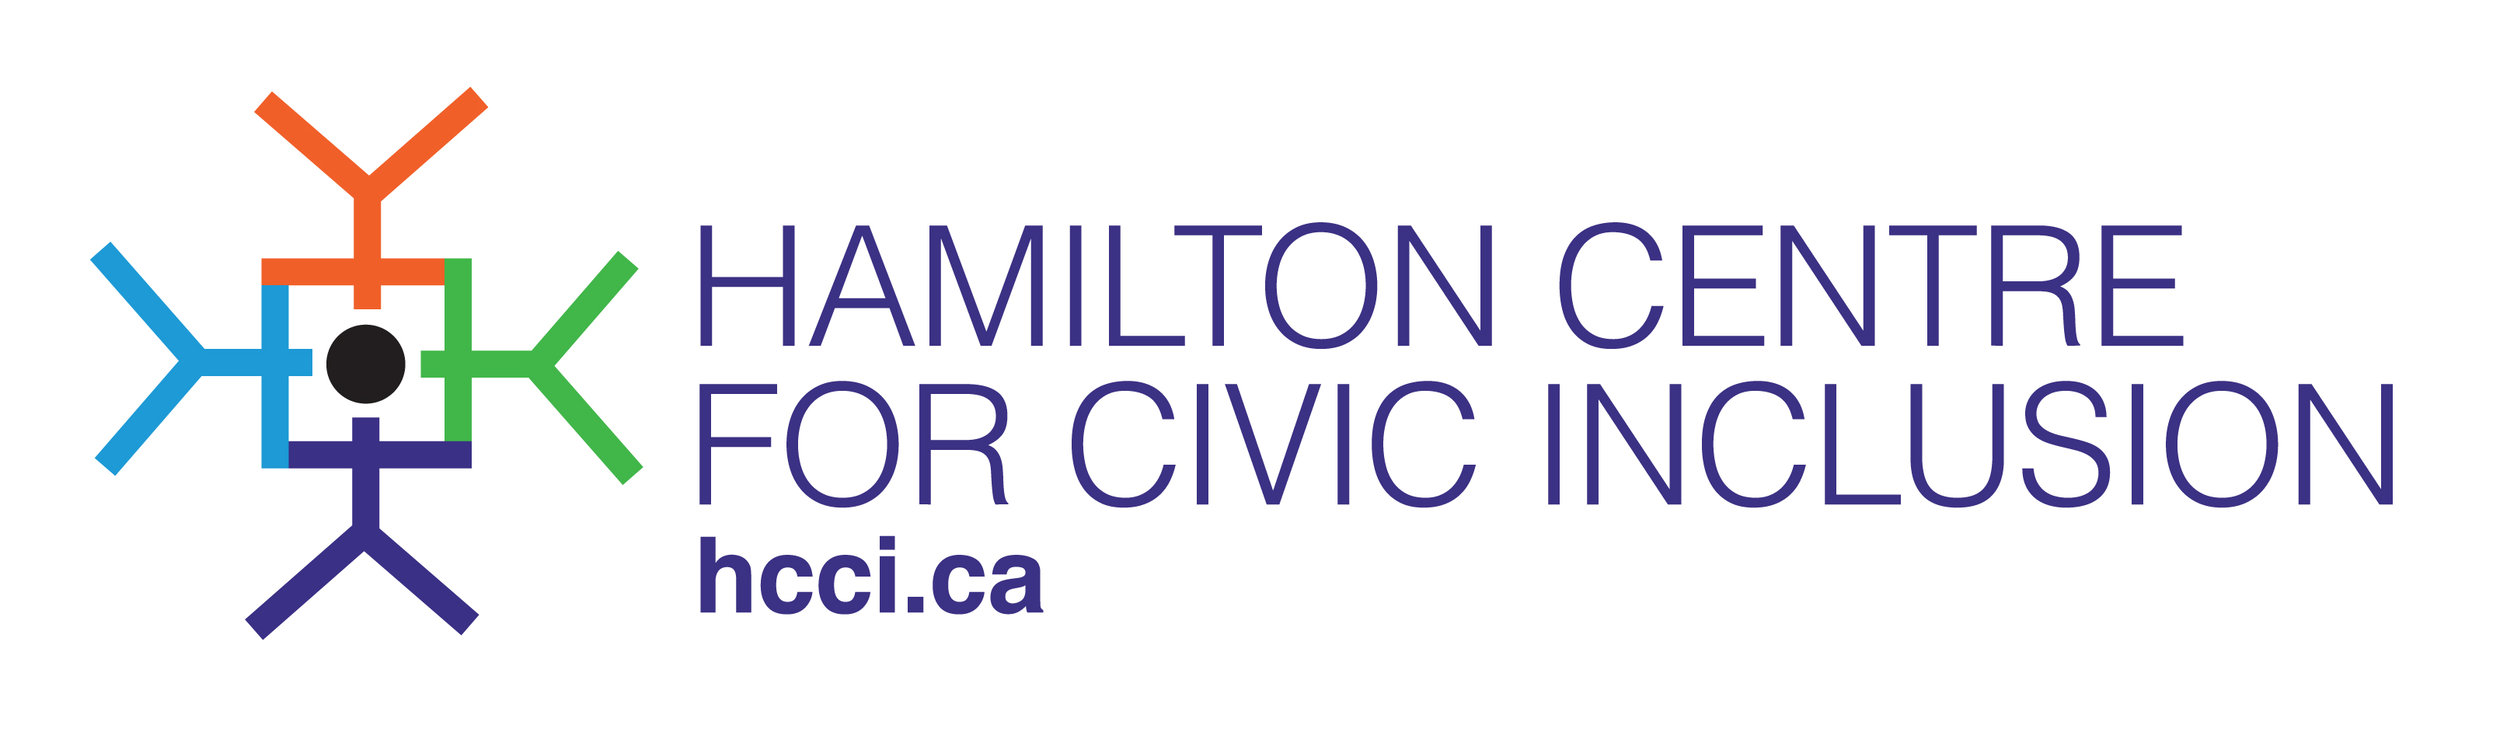 Hamilton Centre for Civic Inclusion.png